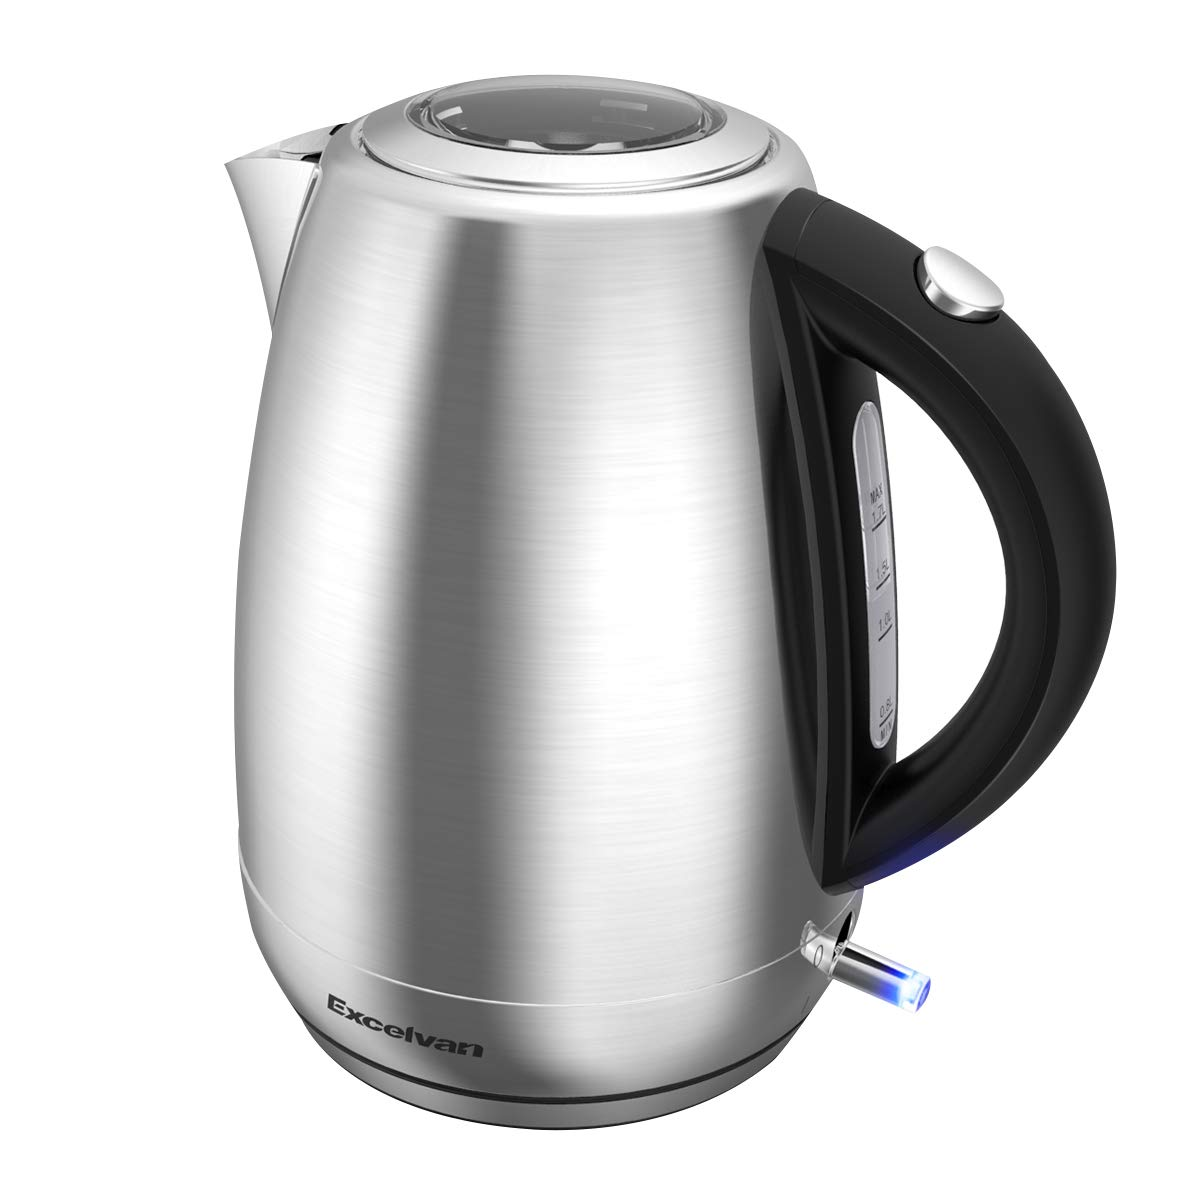 Electric Kettle Stainless Steel Cordless Tea Kettle 1500W Fasting Boiling with Temperature Control, 1.8 QT Hot Water Kettle with Blue LED Light, Auto Shut-Off and Boil-Dry Protection